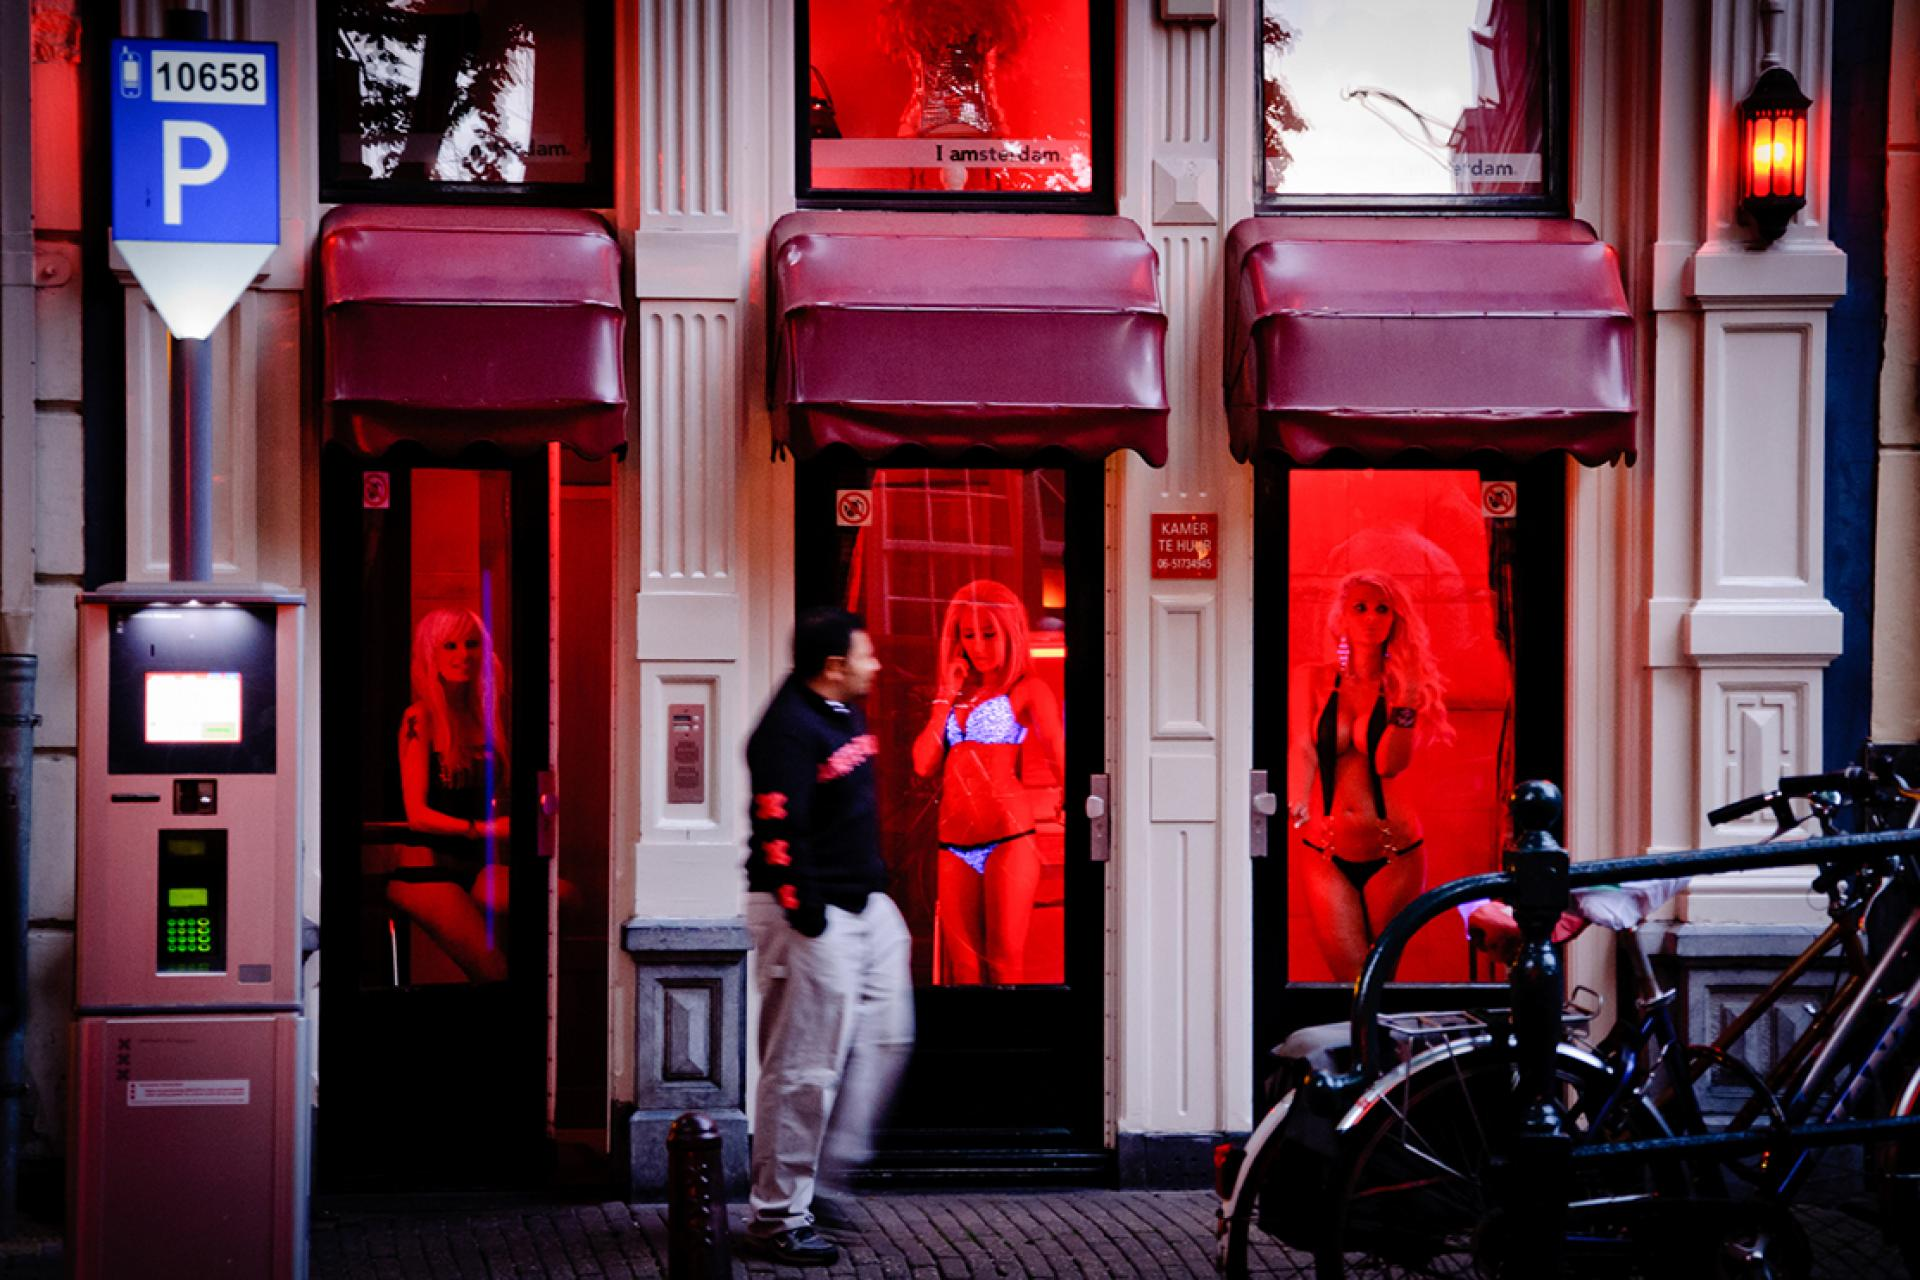 Amsterdam sex workers lukewarm about plans to reform red light district